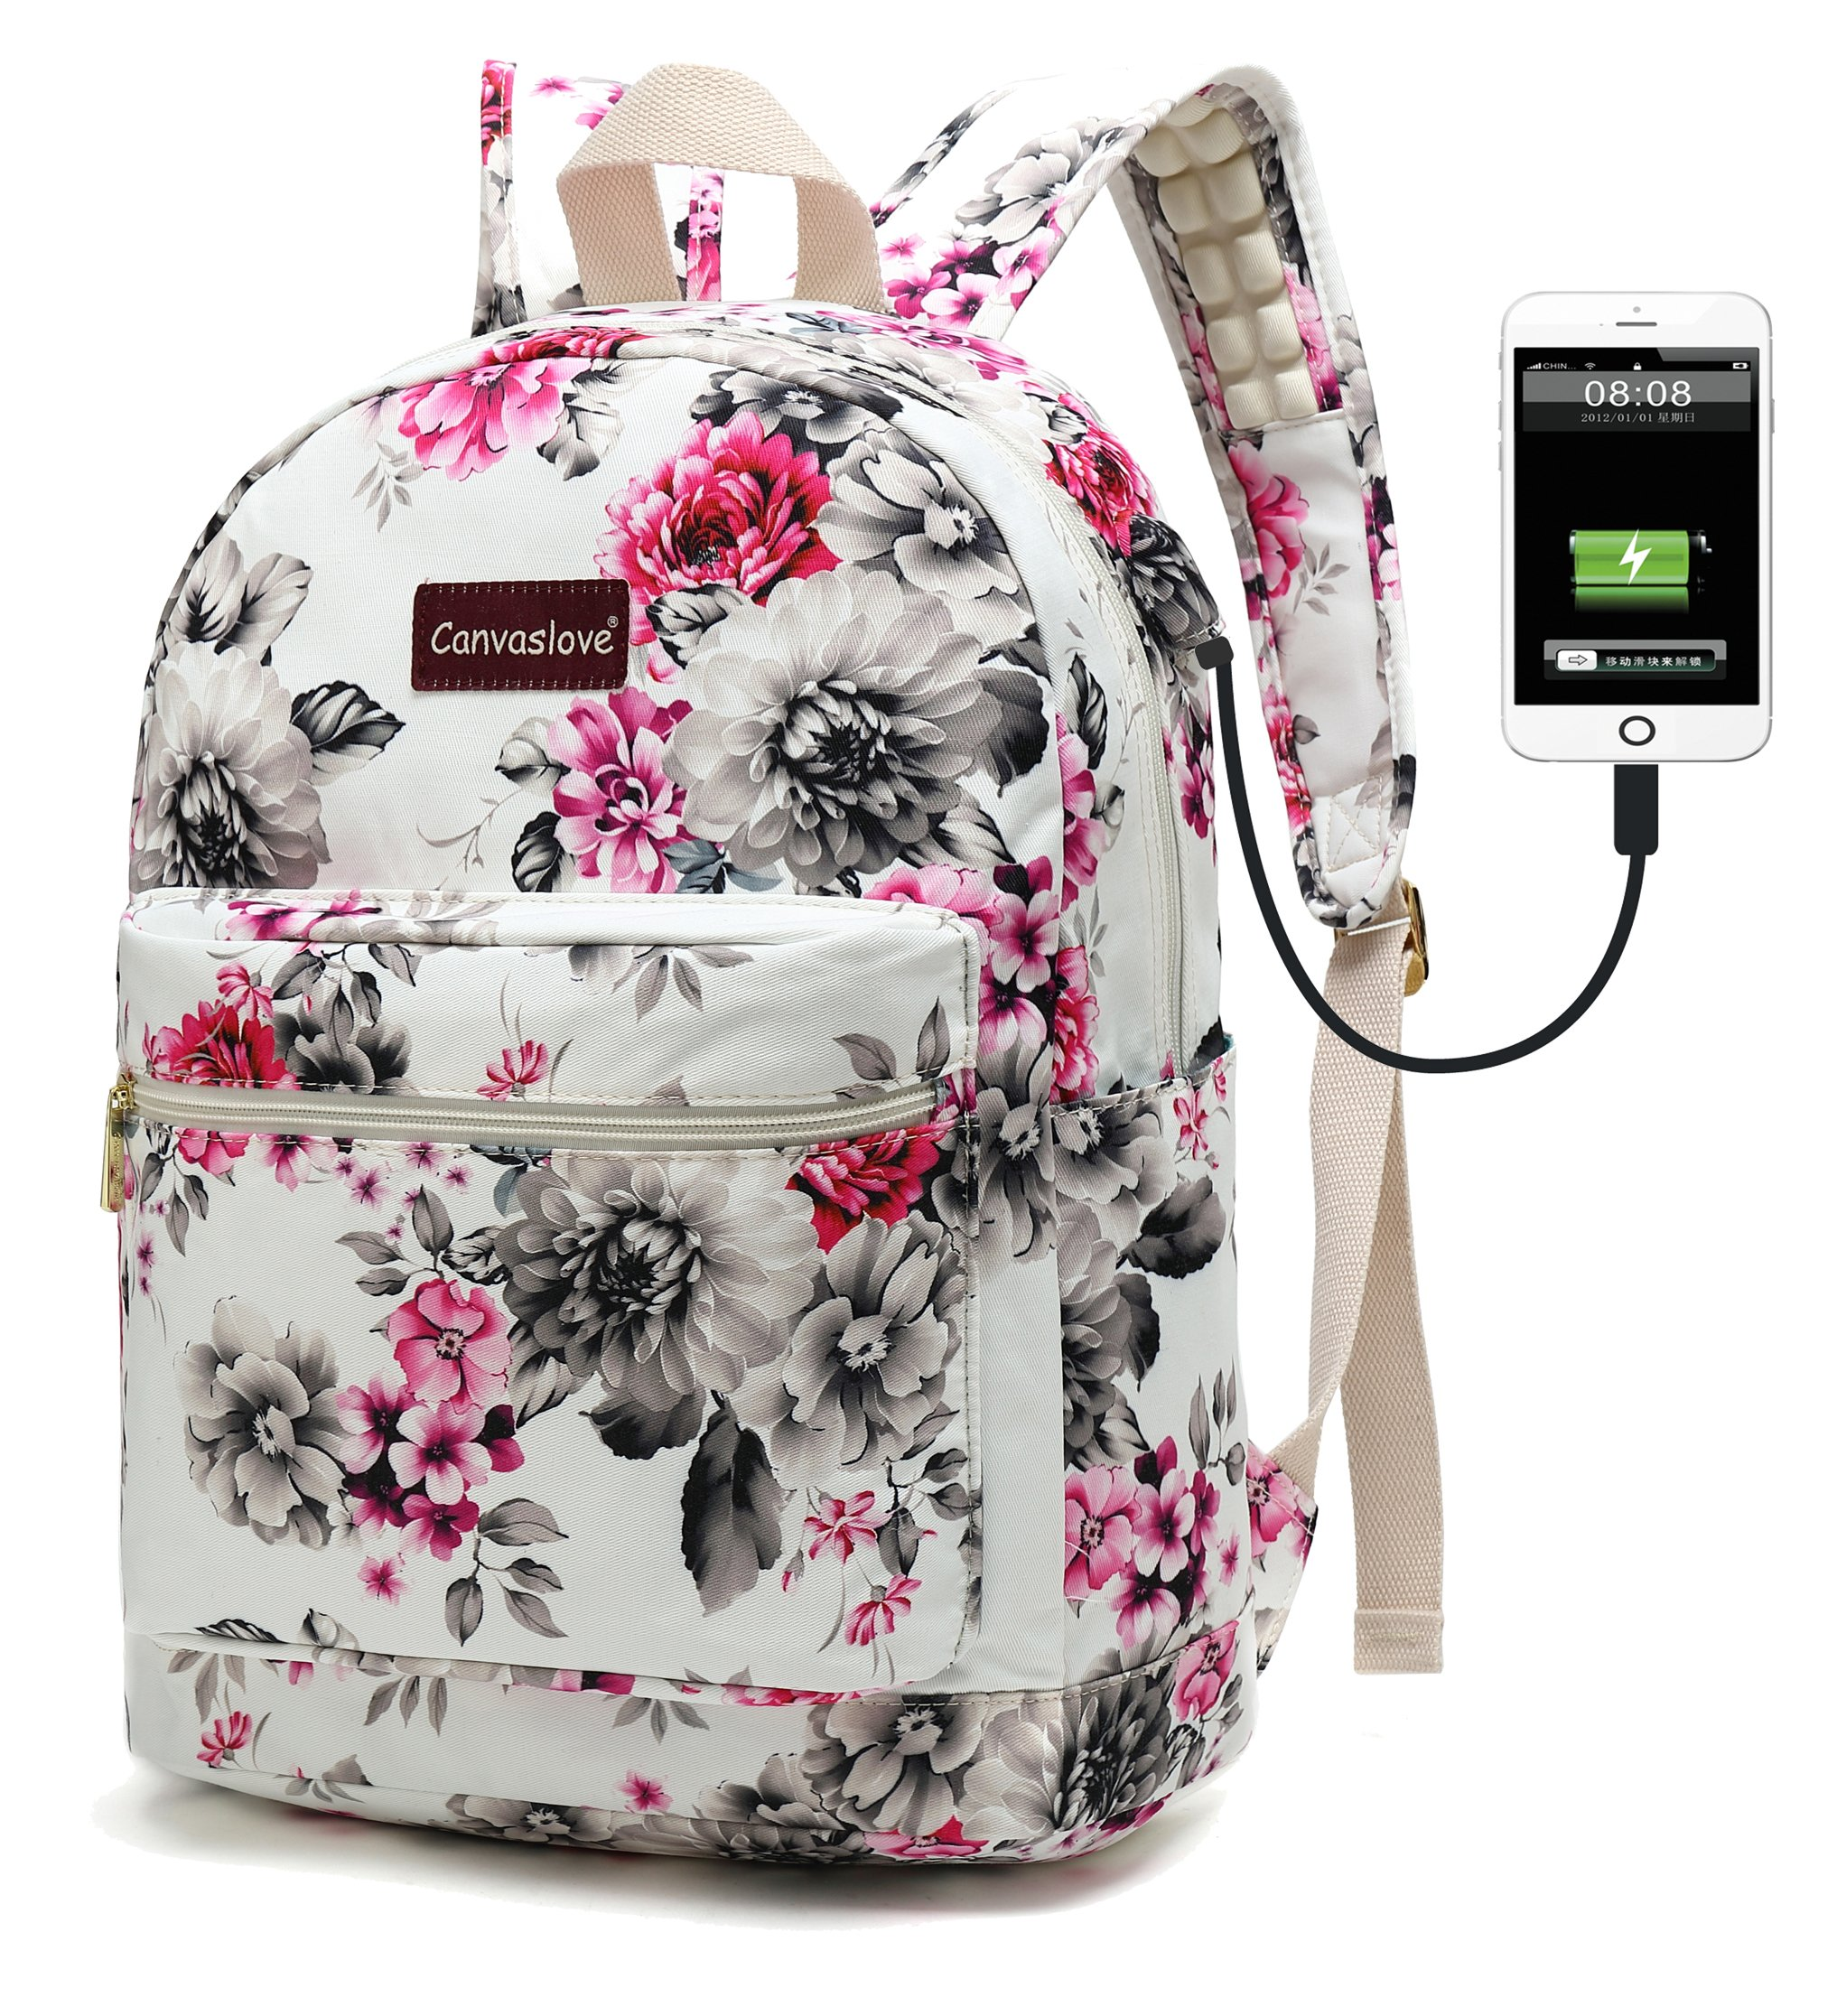 Canvaslove Canvas Waterproof laptop backpack with Massage Cushion Straps and USB charging port for laptop up to 15 inch Men Women Student Outdoor Travel Backpack (White Chrysanthemums)